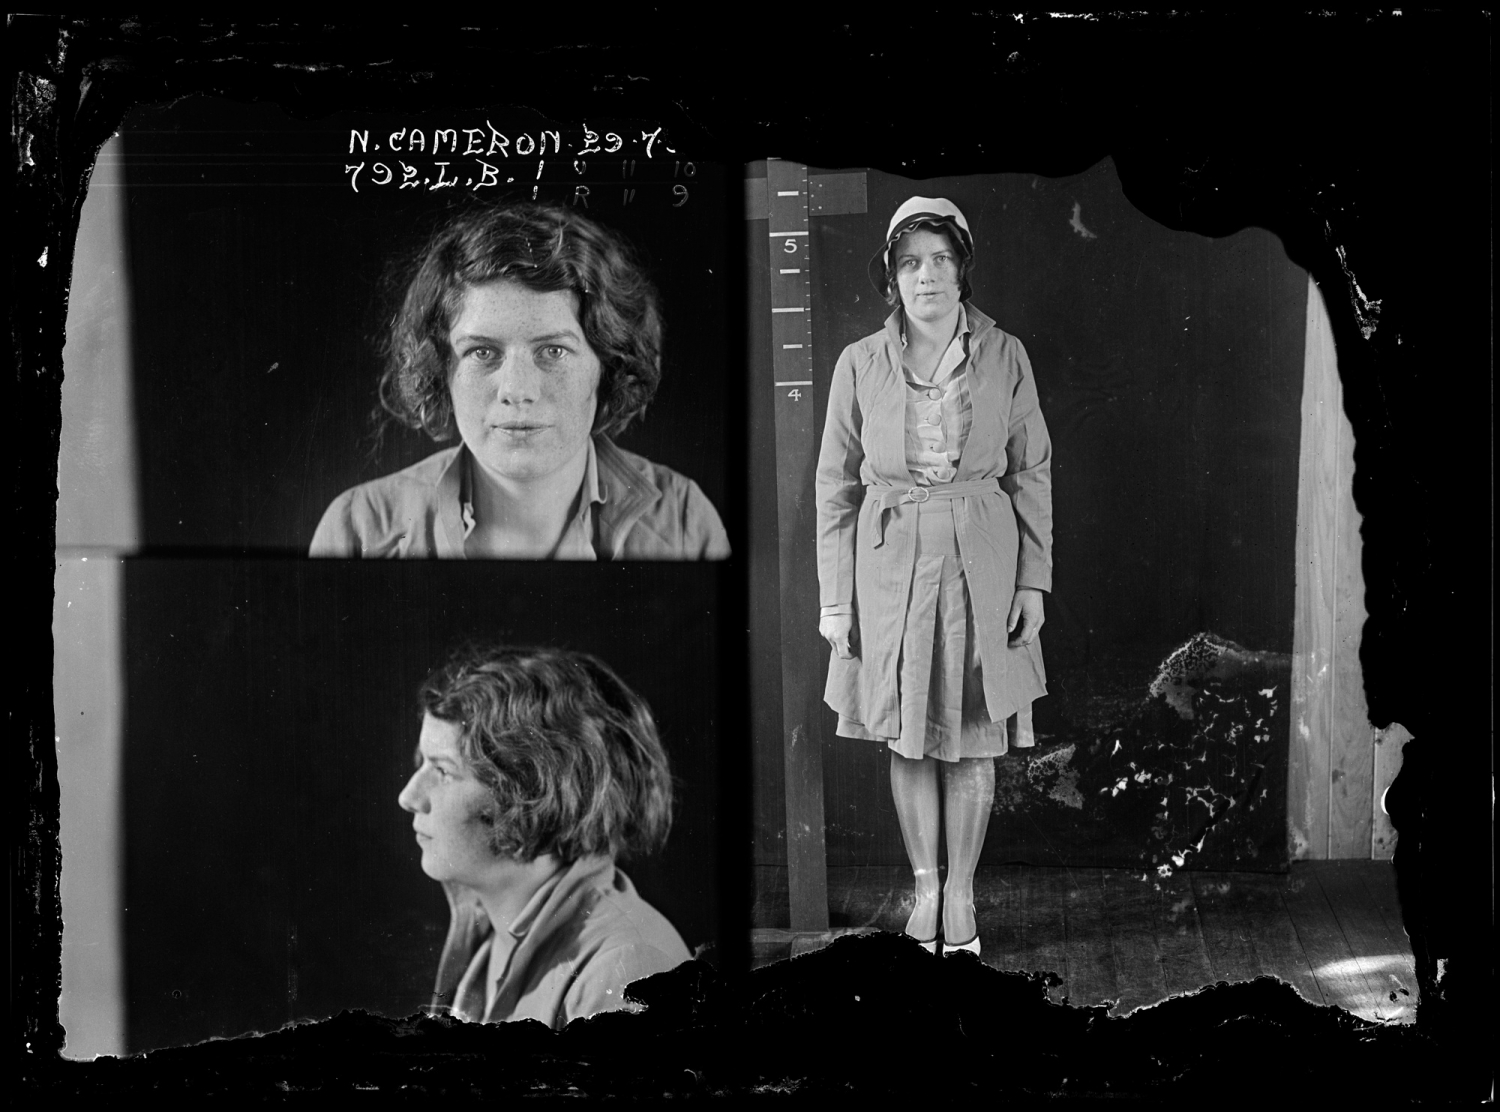 Nellie Cameron, criminal record number 792LB, 29 July 1930. State Reformatory for Women, Long Bay, NSW